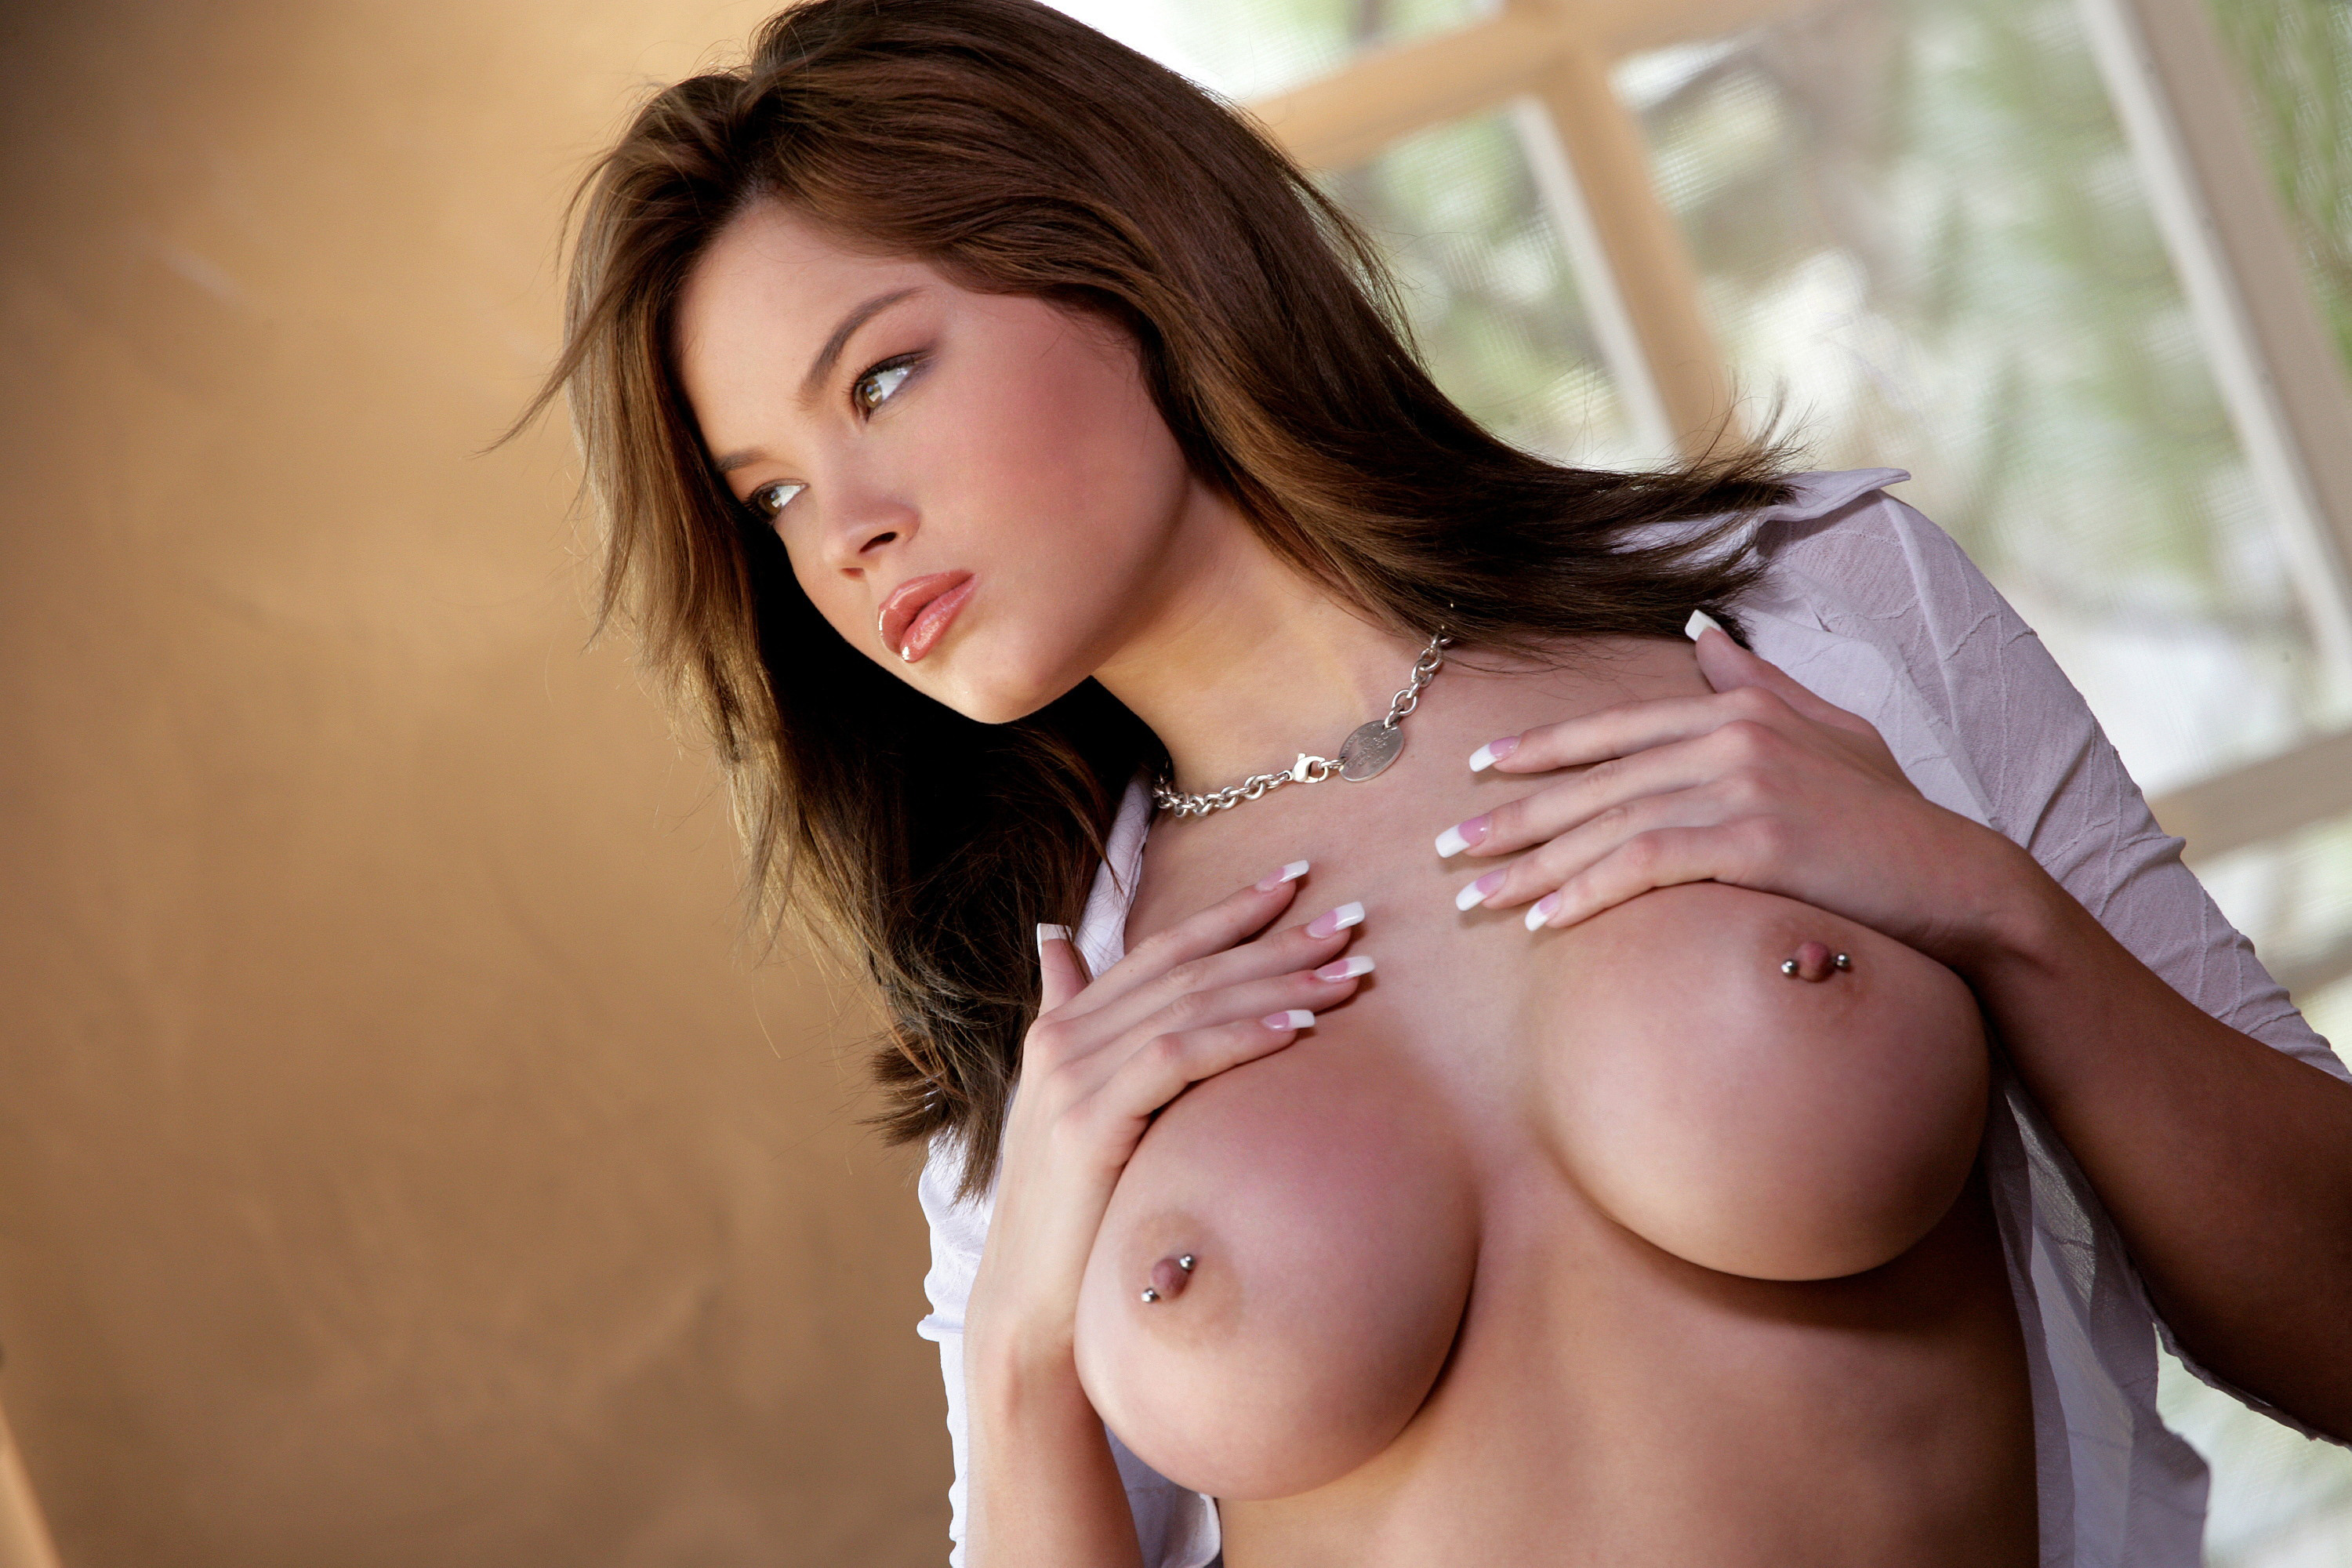 boobs-nude-mix-vol6-31